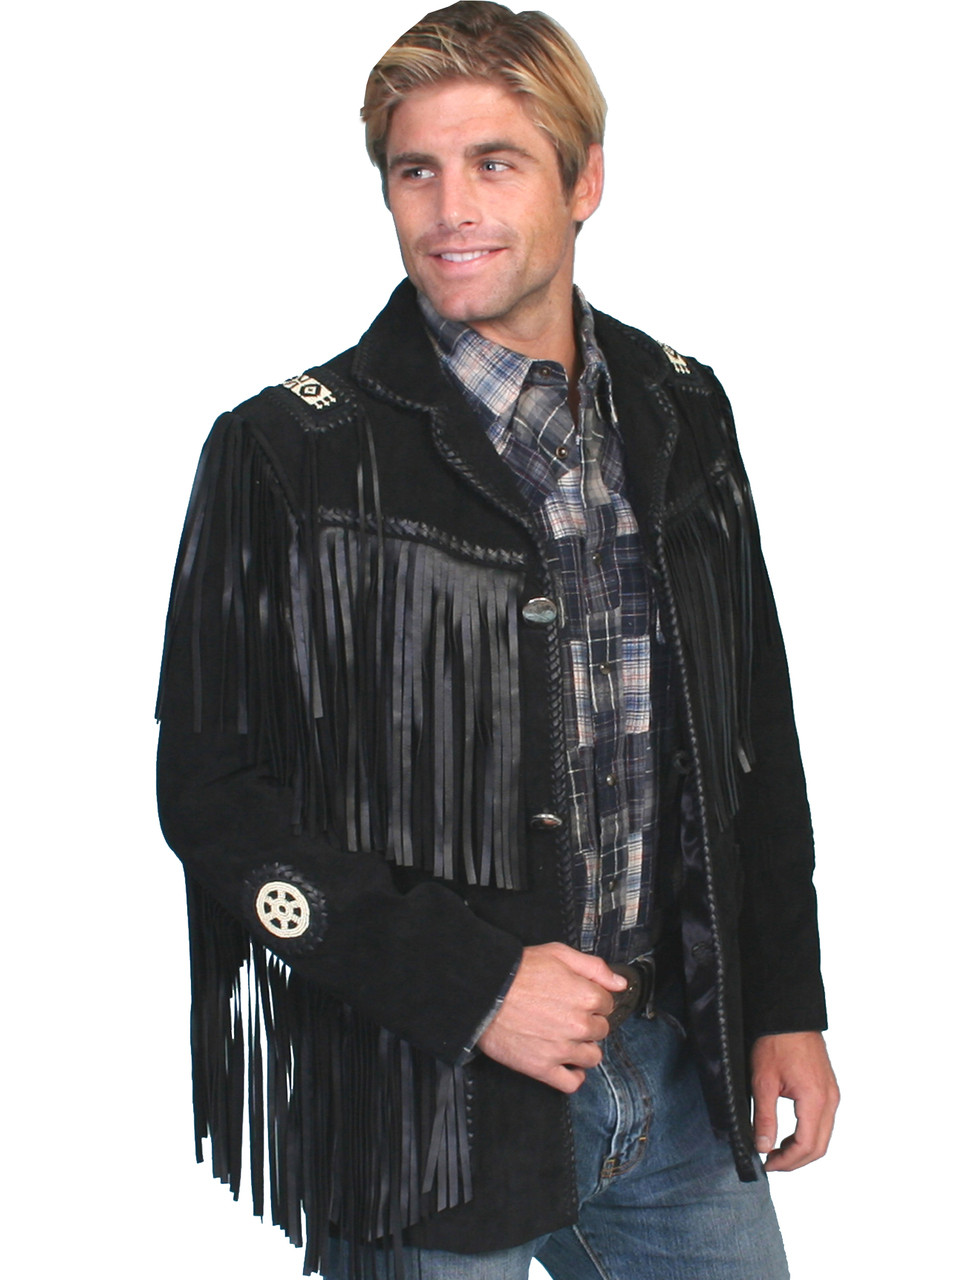 2974363ee BLACK BOAR SUEDE Hand Laced Bead Fringed Jacket Trimmed Coat - Prairie  Leather Suede JACKET MENS JACKETS Native American Style Designed